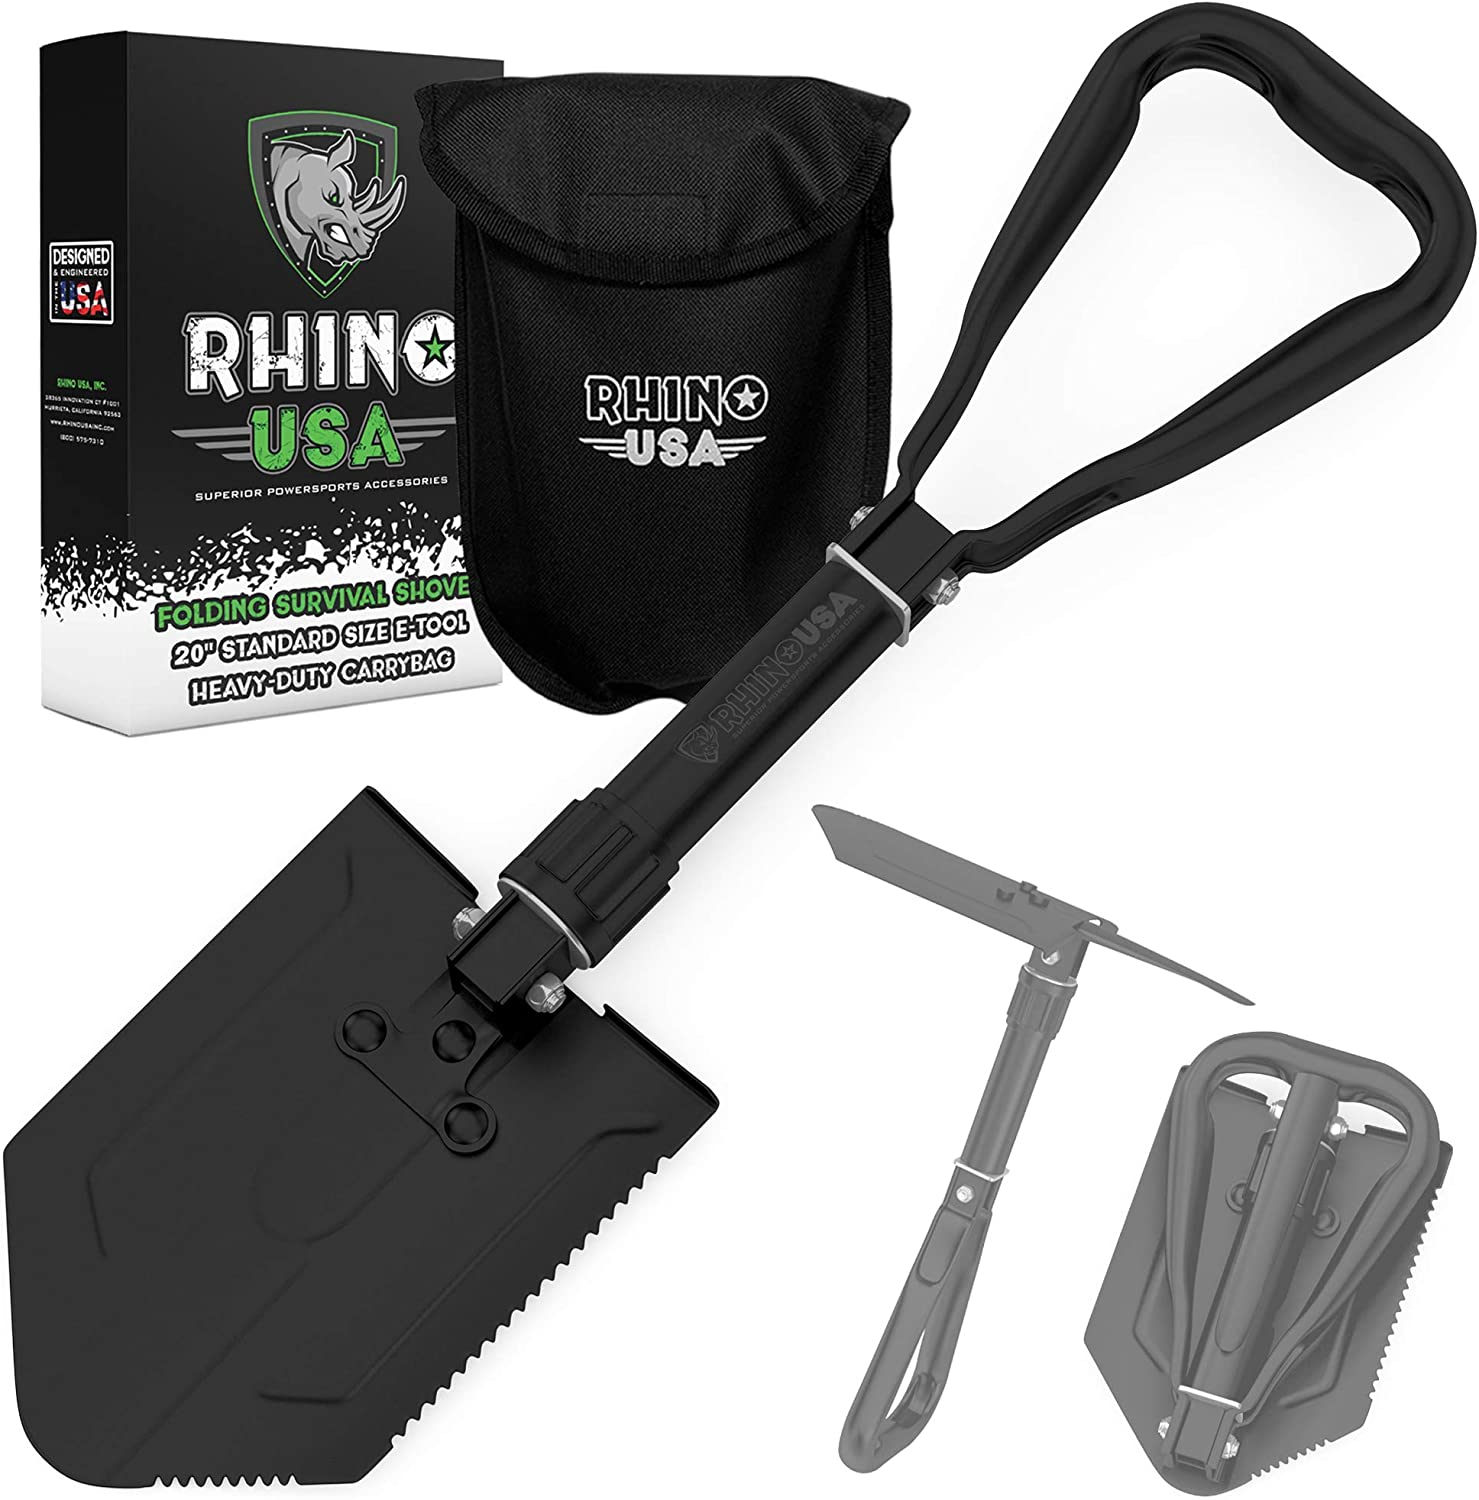 Rhino USA Folding Survival Shovel w/Pick - Heavy Duty Carbon Steel Military Style Entrenching Tool for Off Road, Camping, Gardening, Beach, Digging Dirt, Sand, Mud & Snow - Guaranteed for Life! : Sports & Outdoors